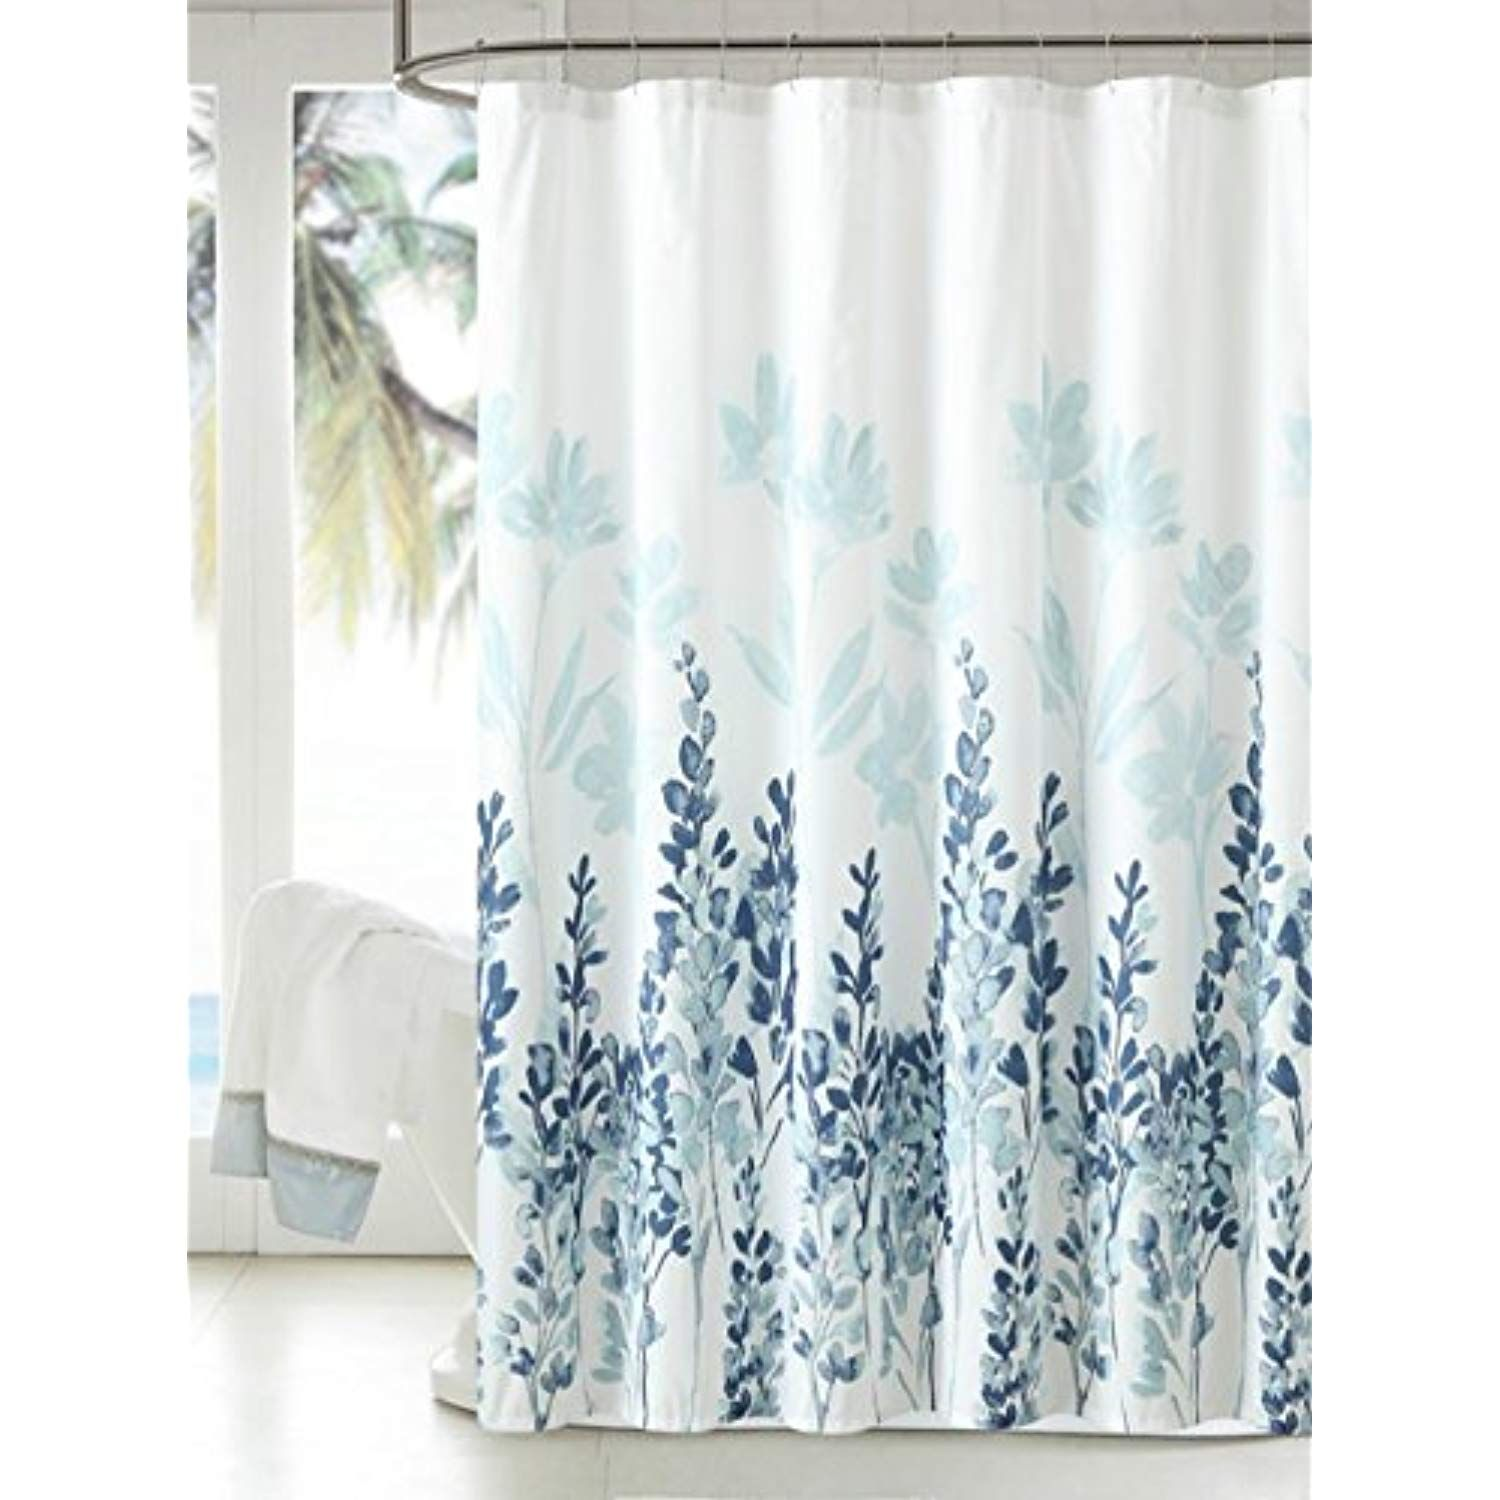 Manggou Fabric Shower Curtain Japanese Style Flowers Shower